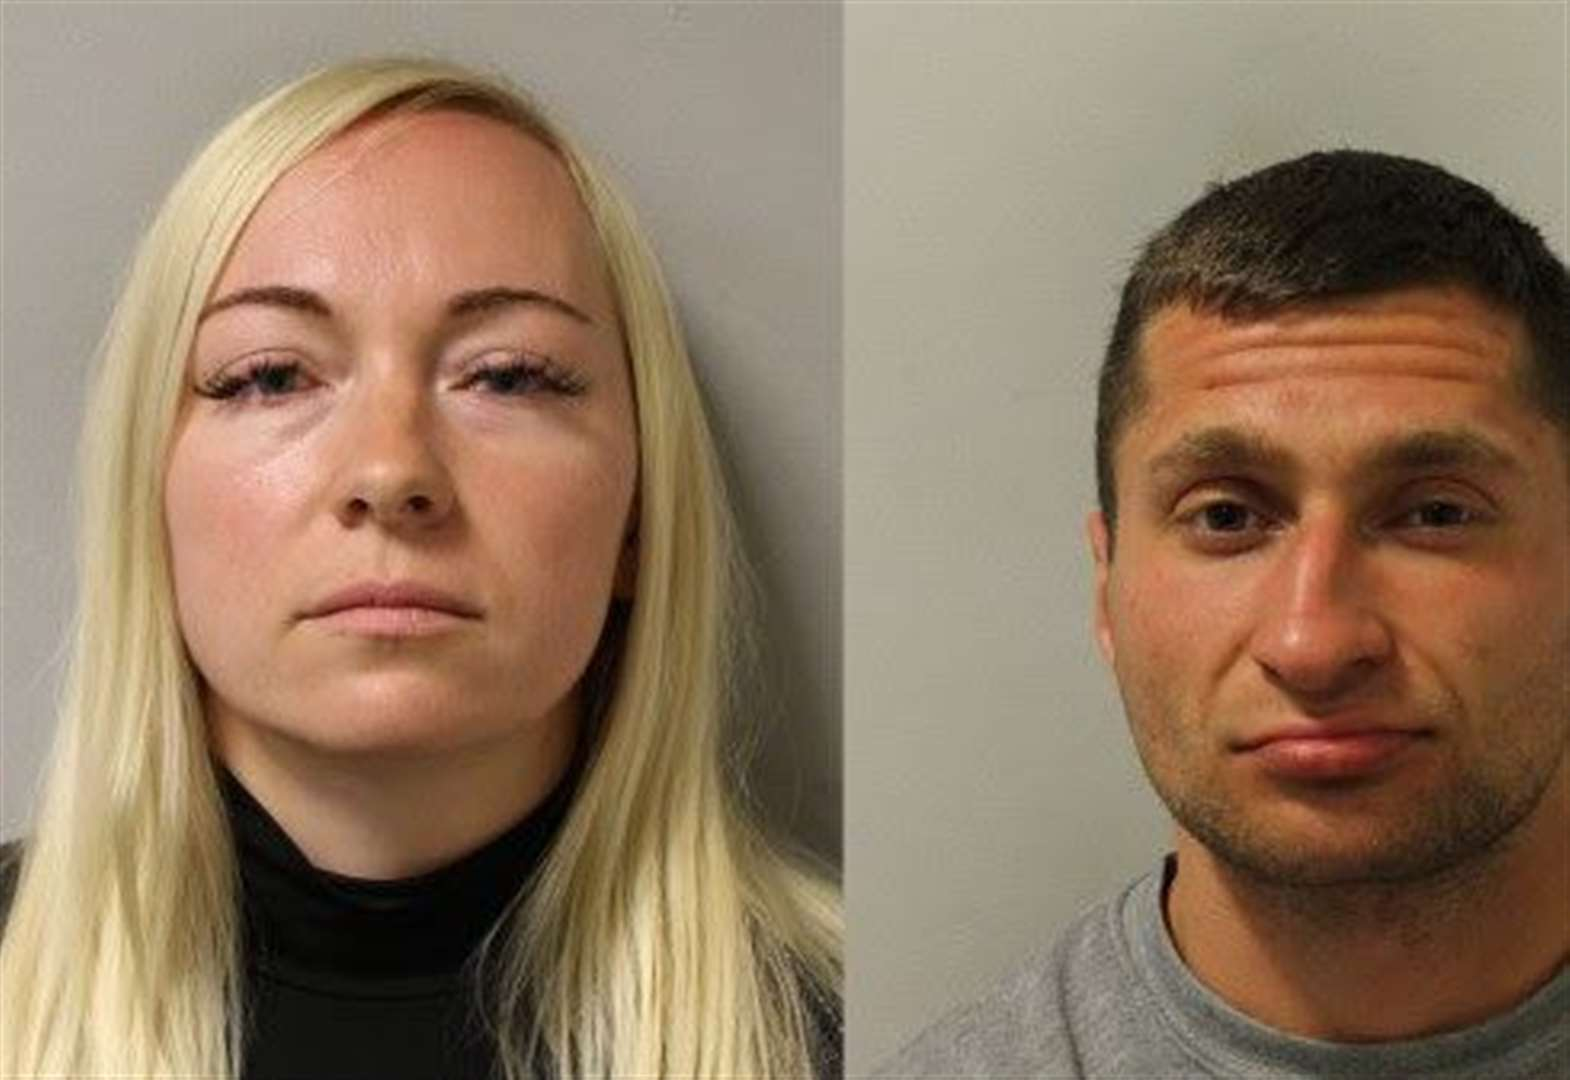 Care worker arranged lovers to fight to the death